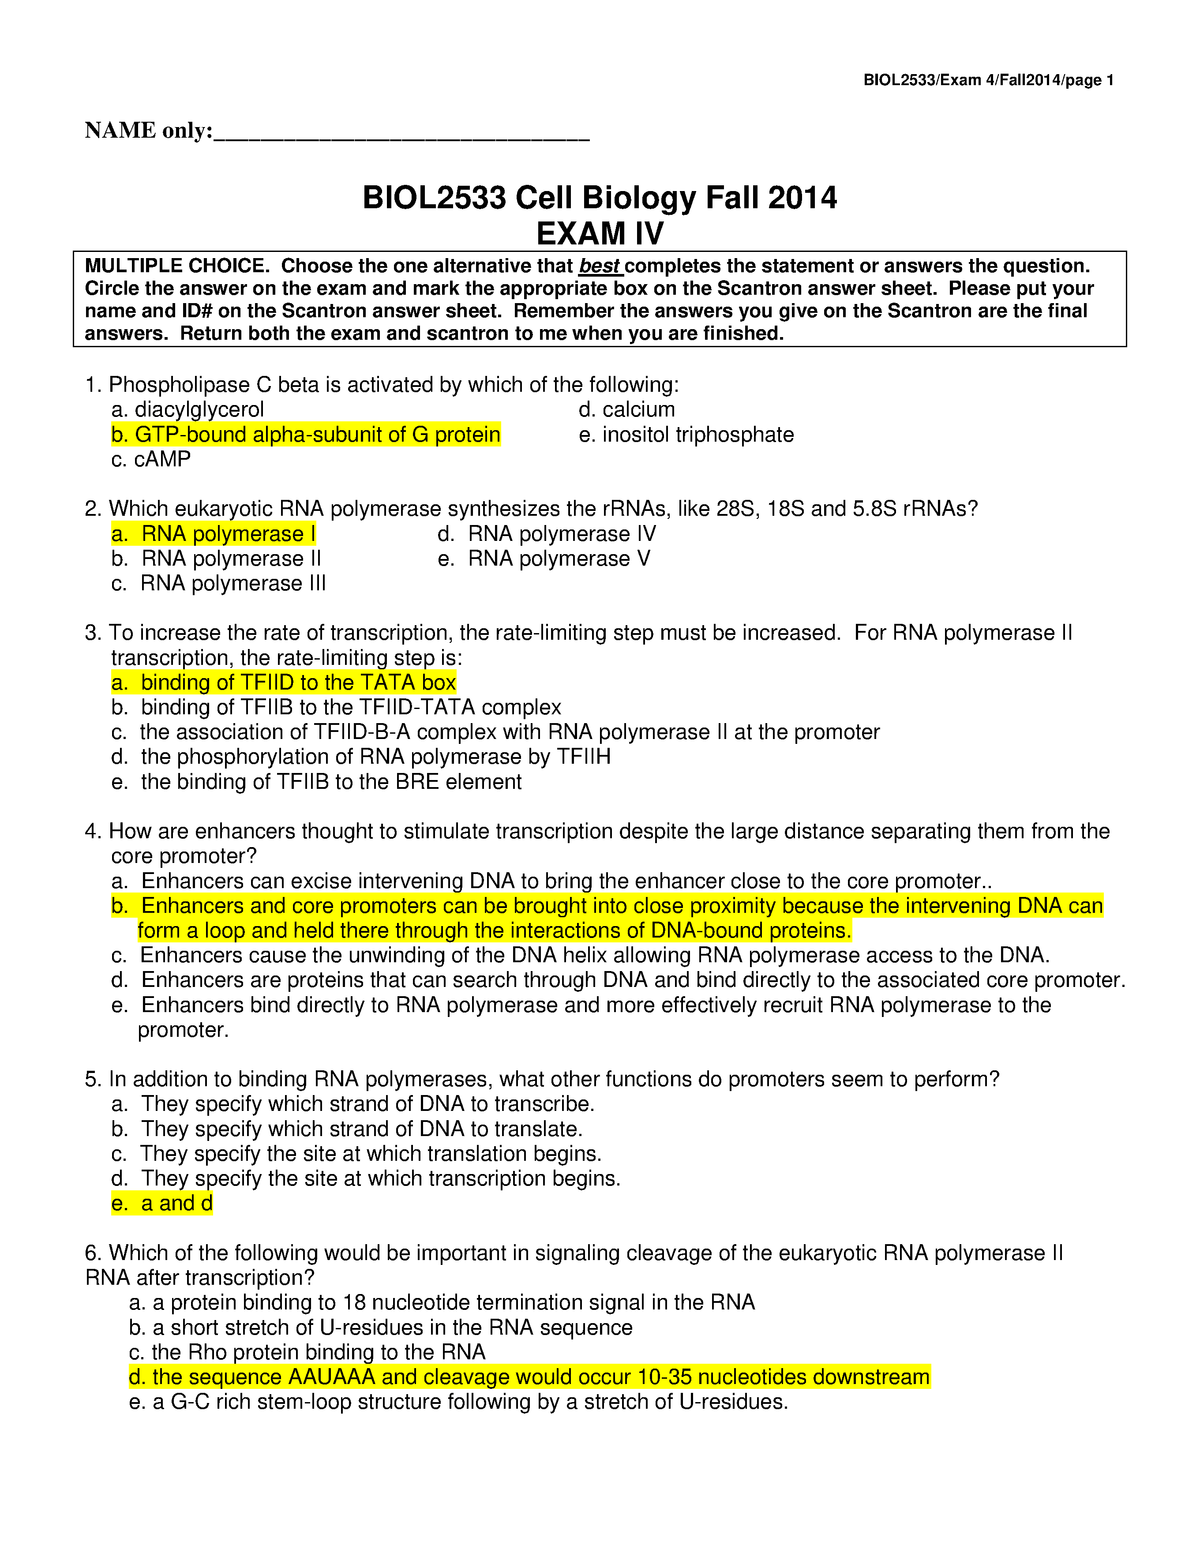 EXAM December 14 Autumn 2014, questions and answers - StuDocu